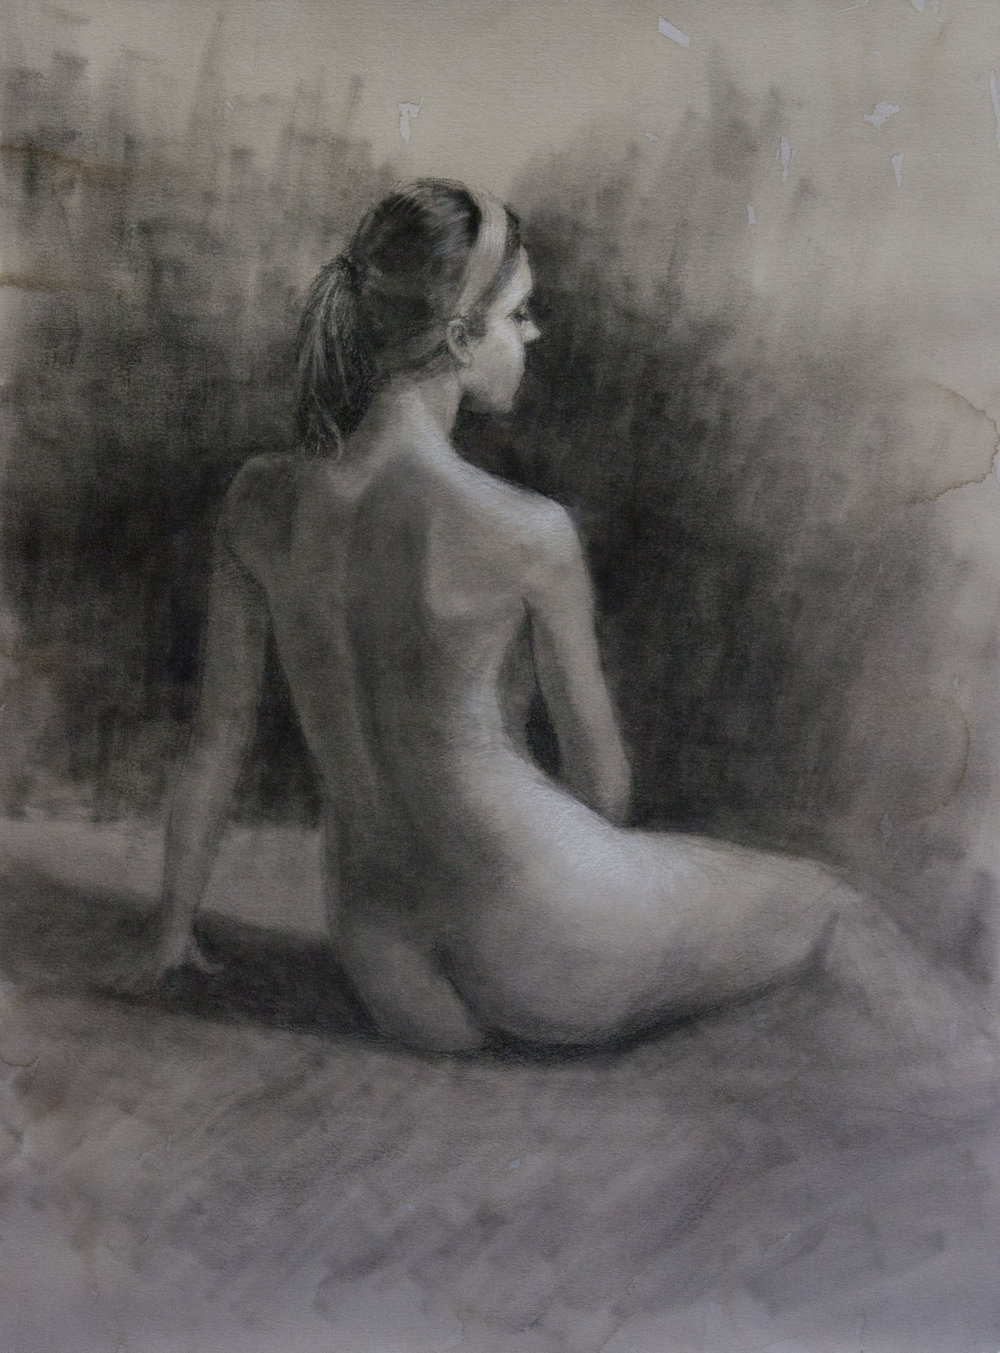 Charcoal drawing demo by George Paliotto